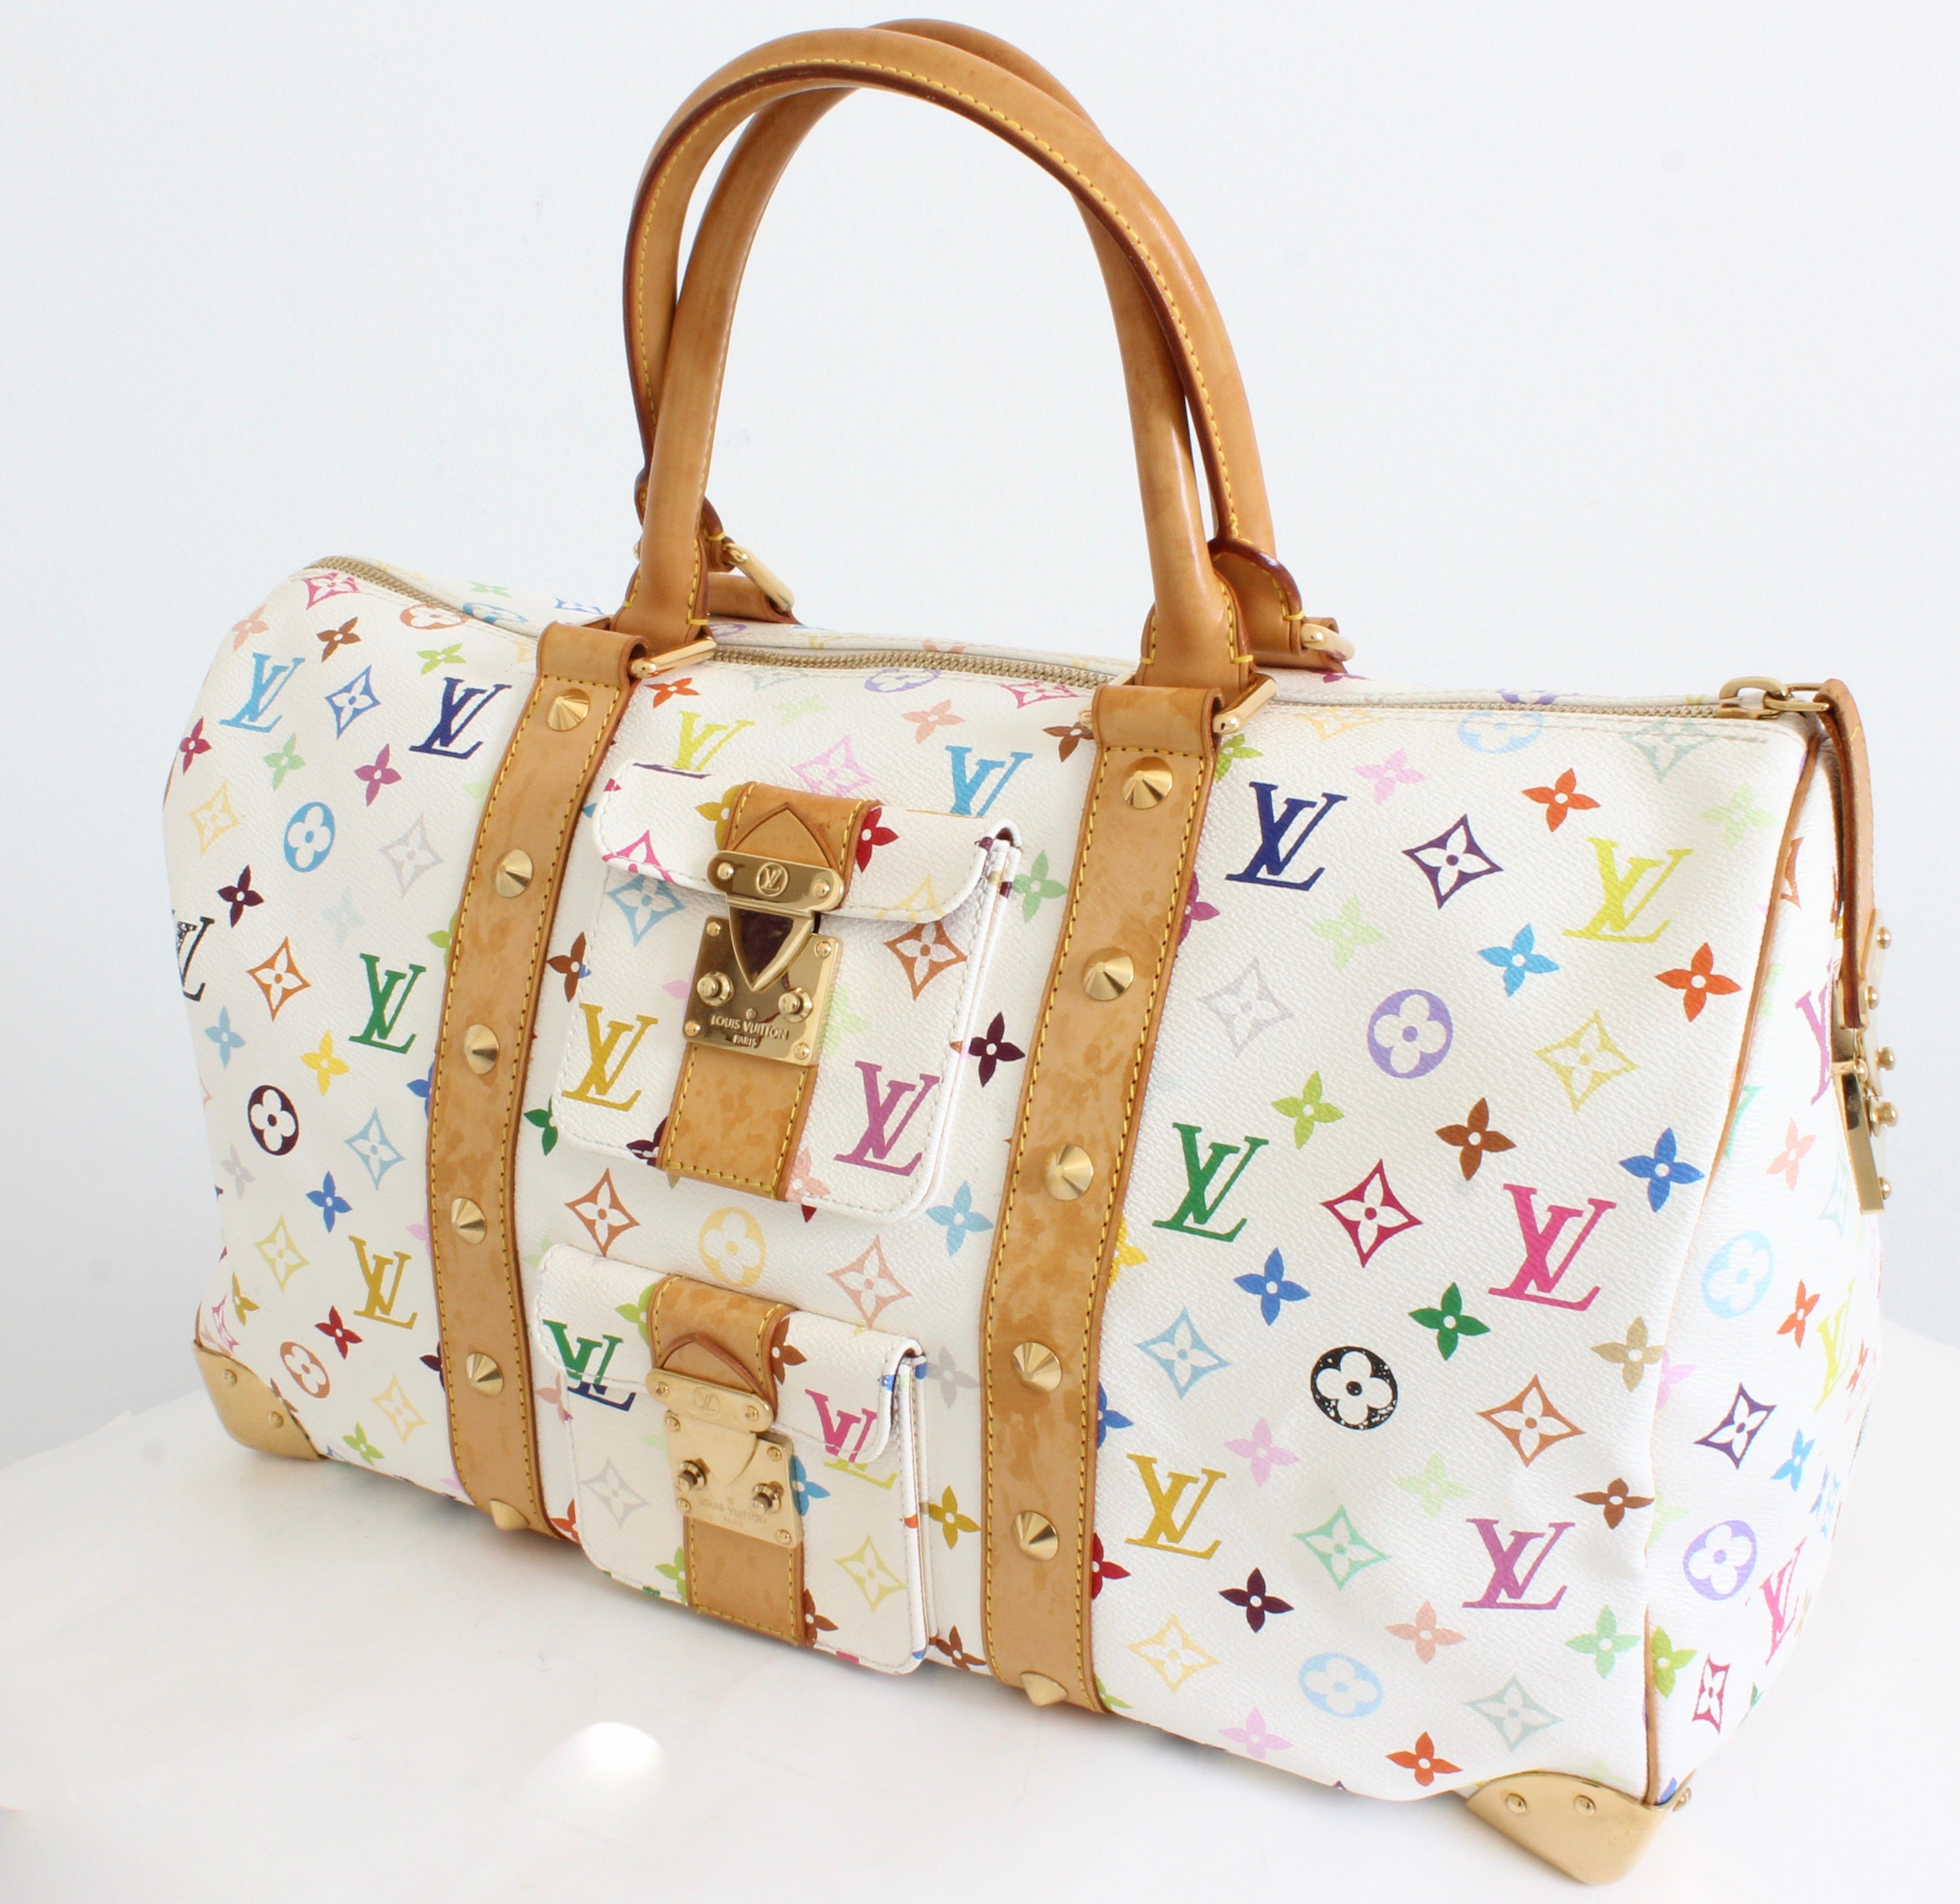 439eaa0317ef Louis Vuitton Multicolore Monogram Keepall 45cm Duffle Bag Travel Tote  Spring 03 For Sale at 1stdibs